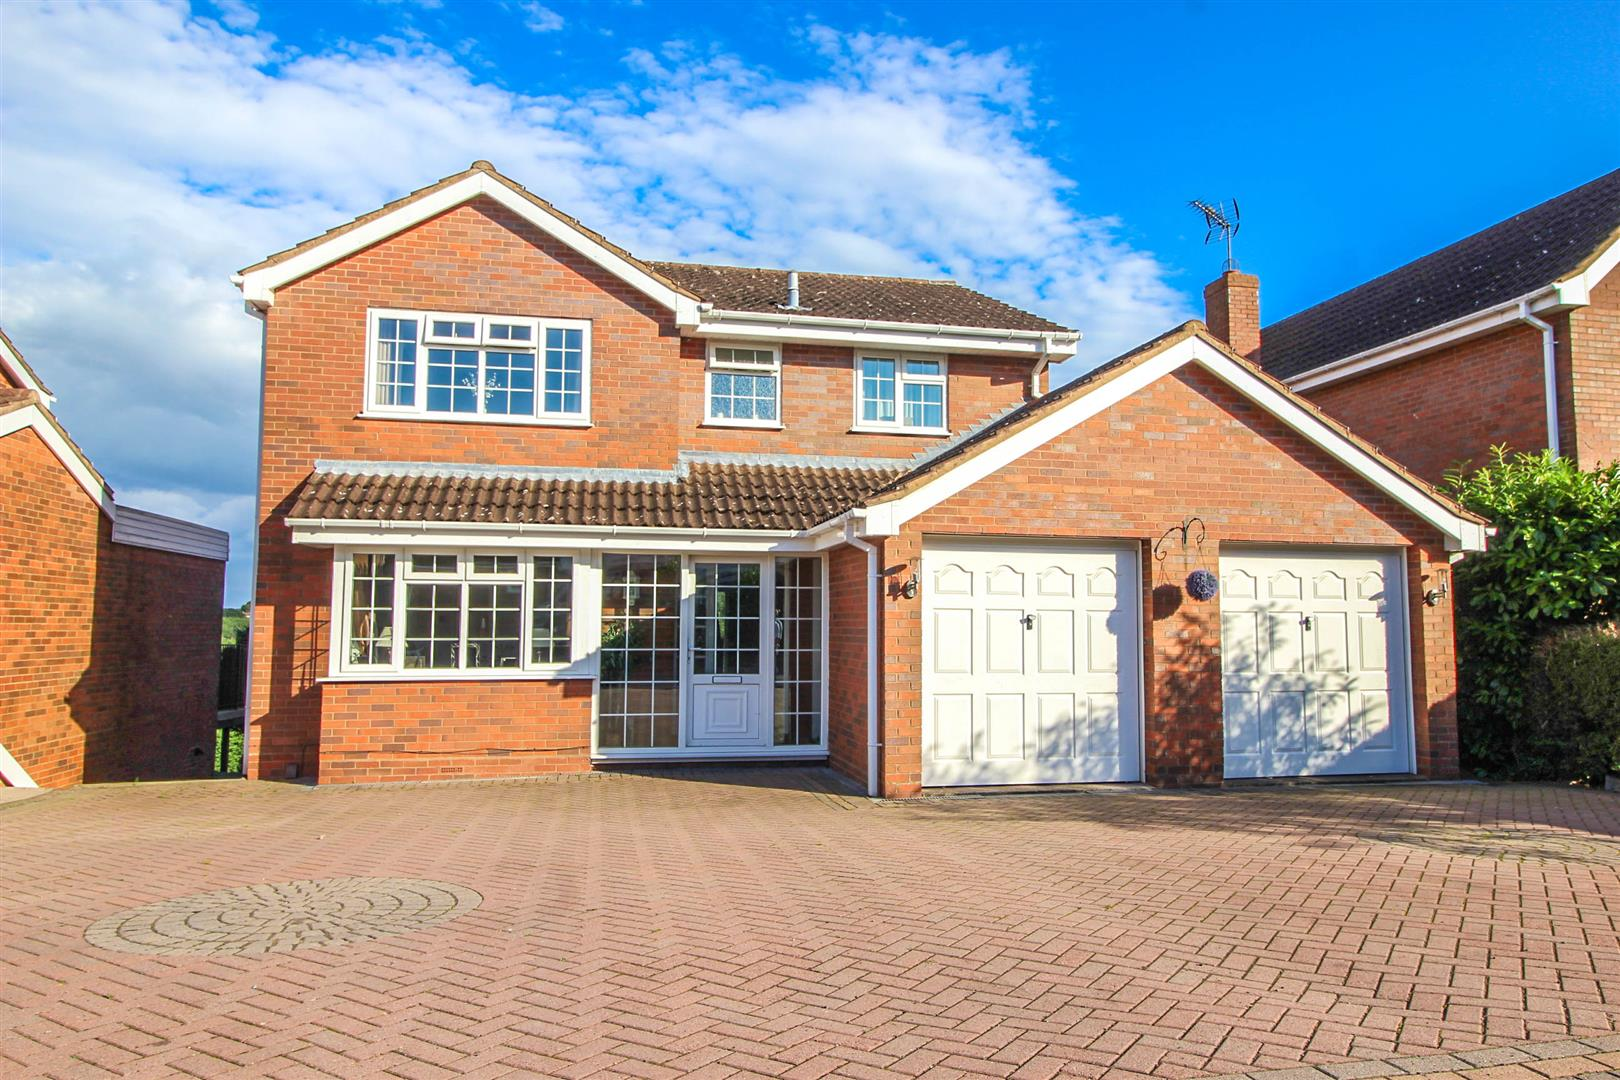 5 Bedrooms Detached House for sale in Blackstitch Lane, Webheath, Redditch